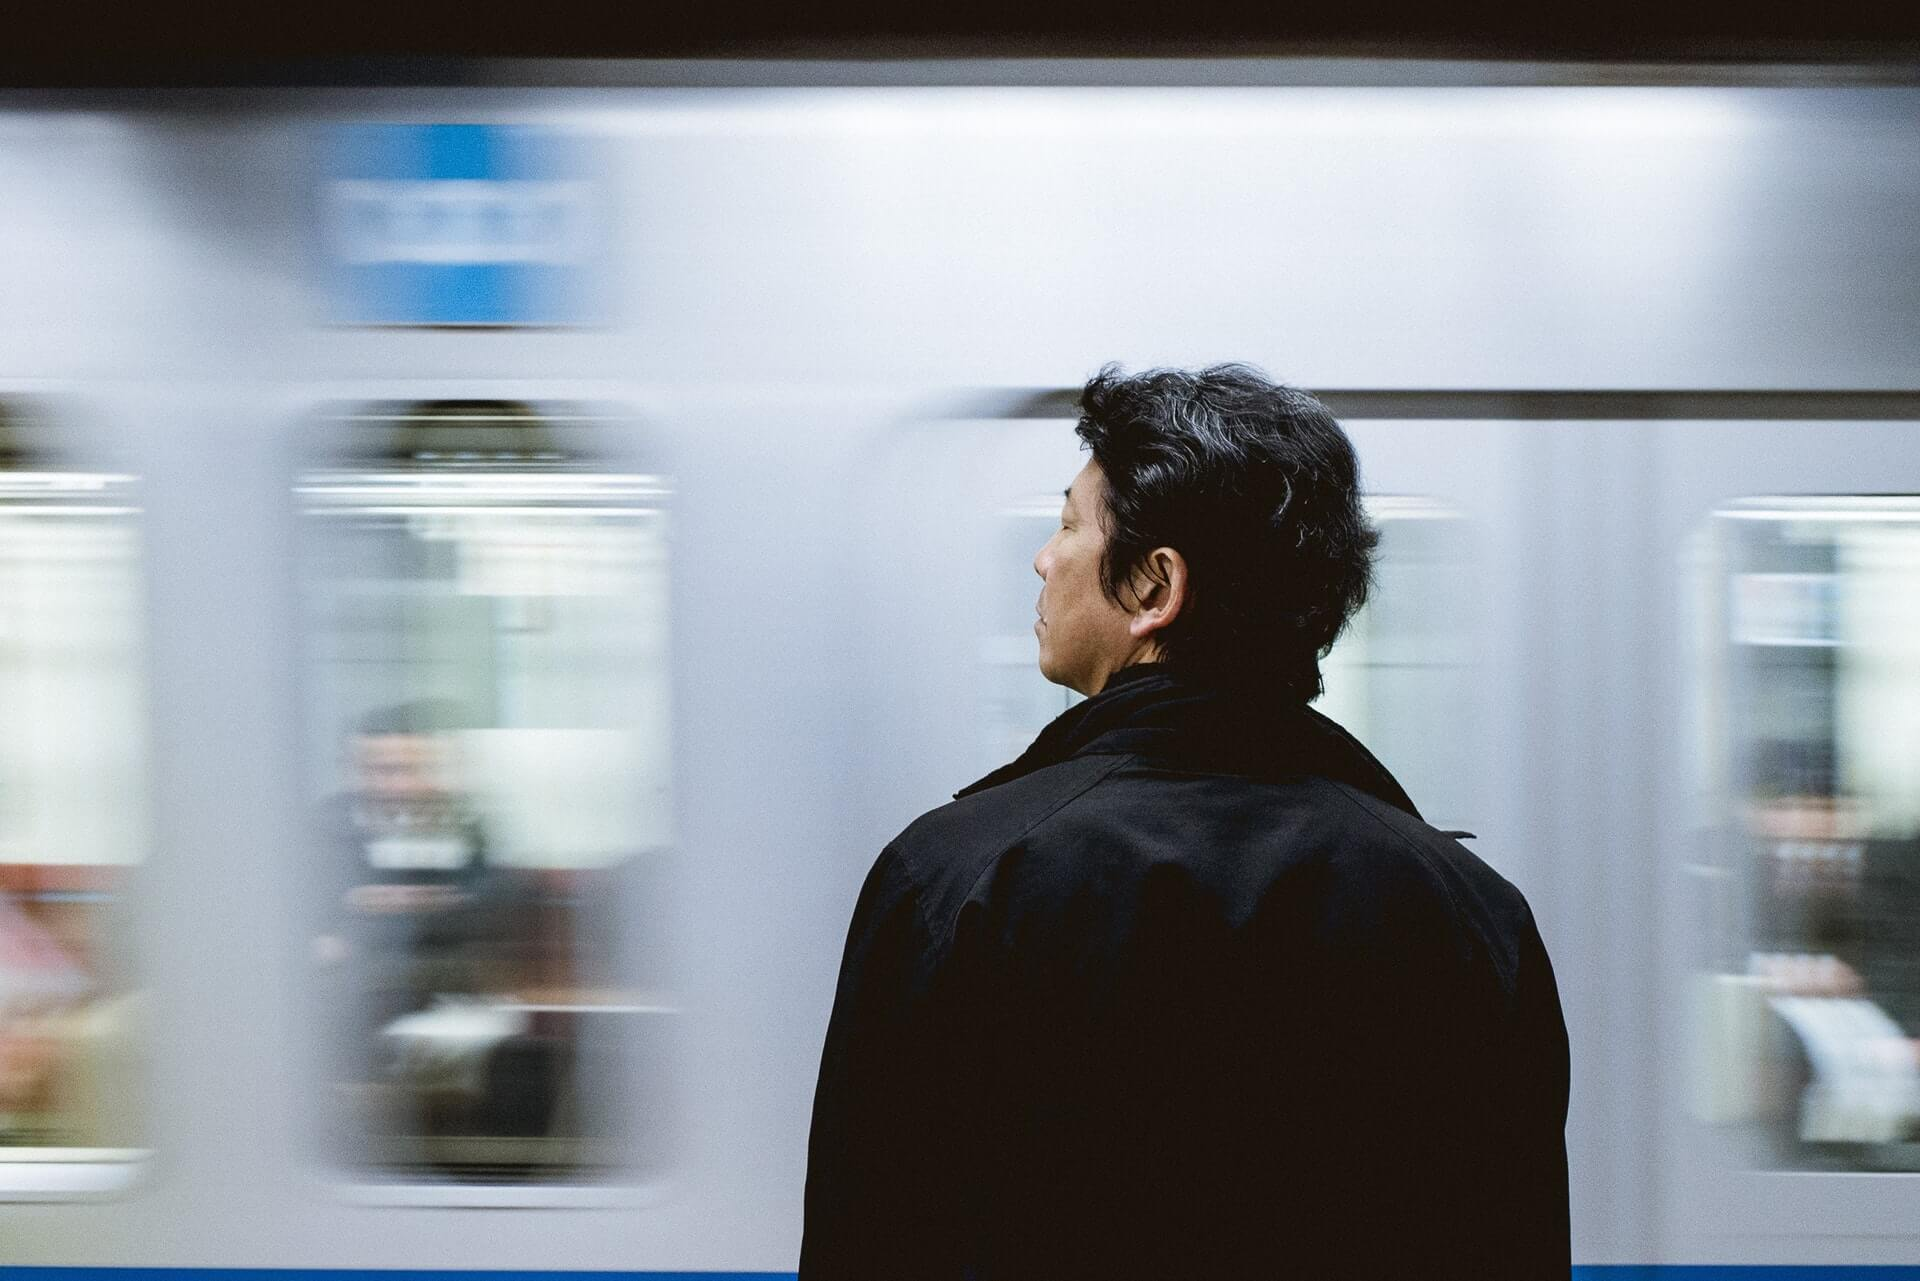 Man in front of train